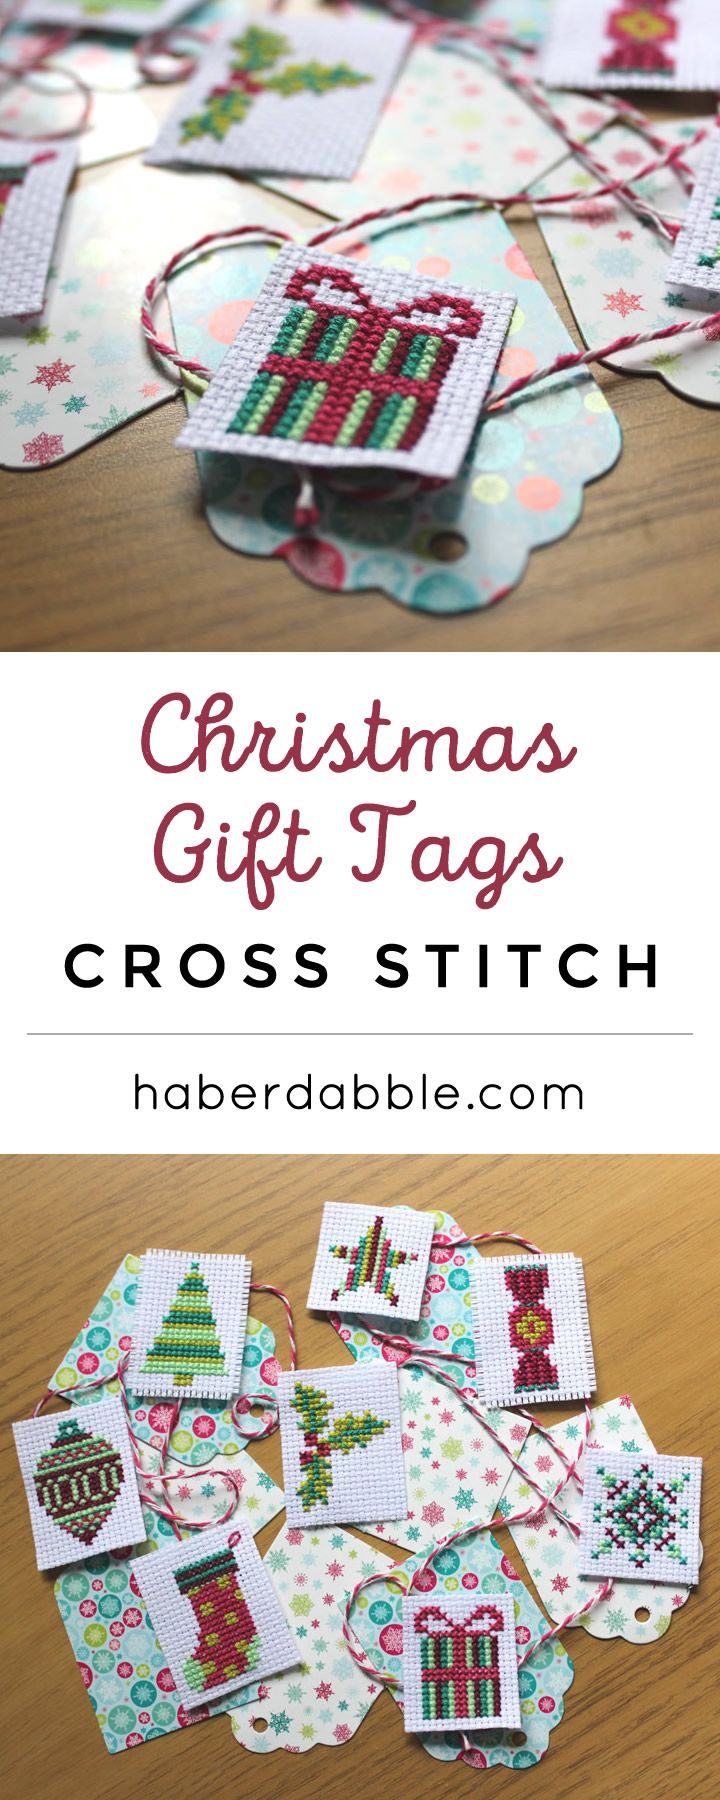 Christmas Gift Tags Cross Stitch | Haberdabble